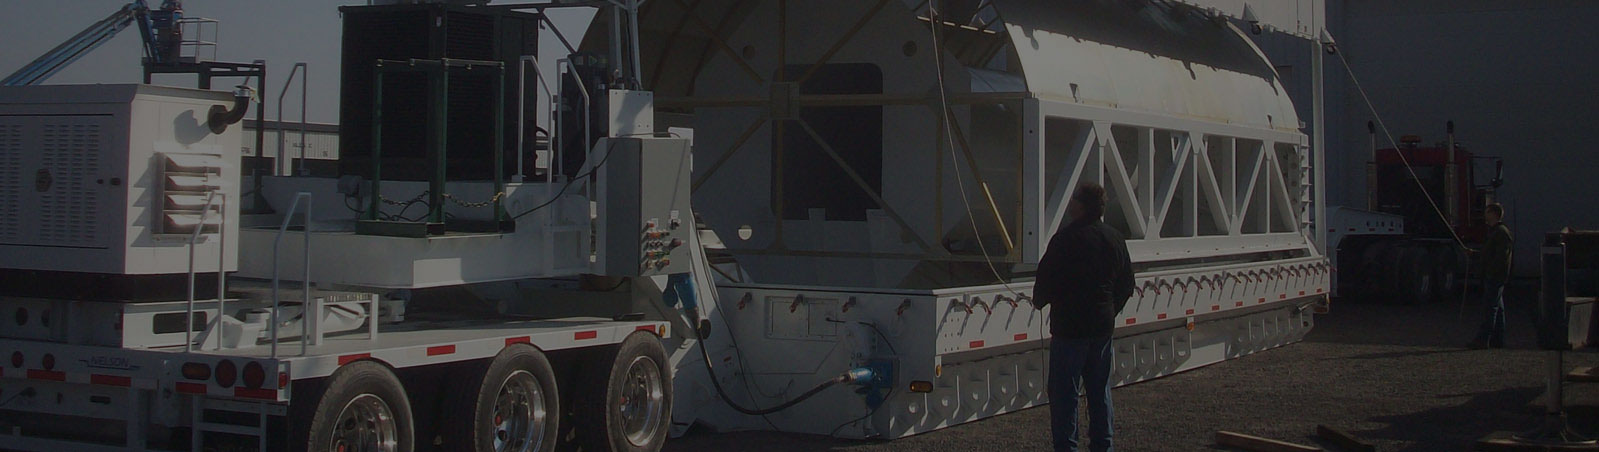 aerospace-trailer-bnr